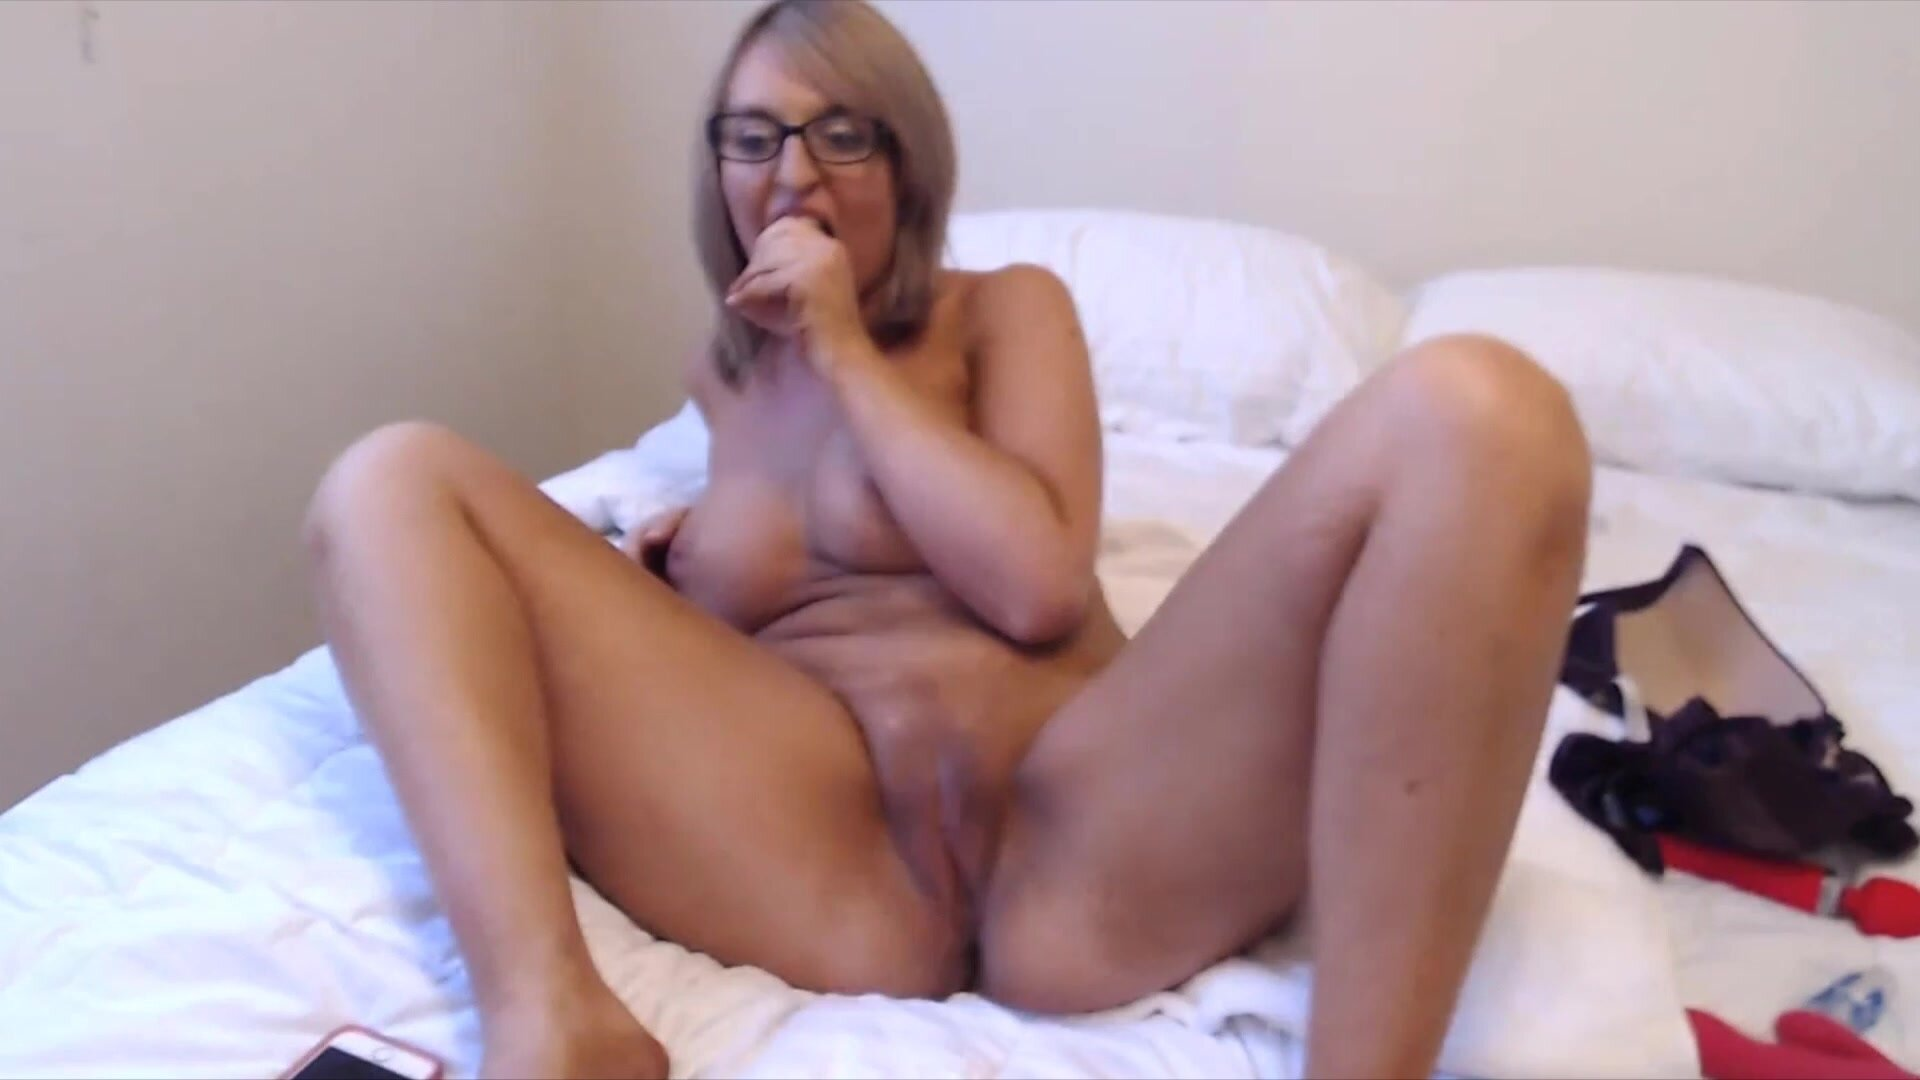 Milf Alison likes to play with pussy on her own